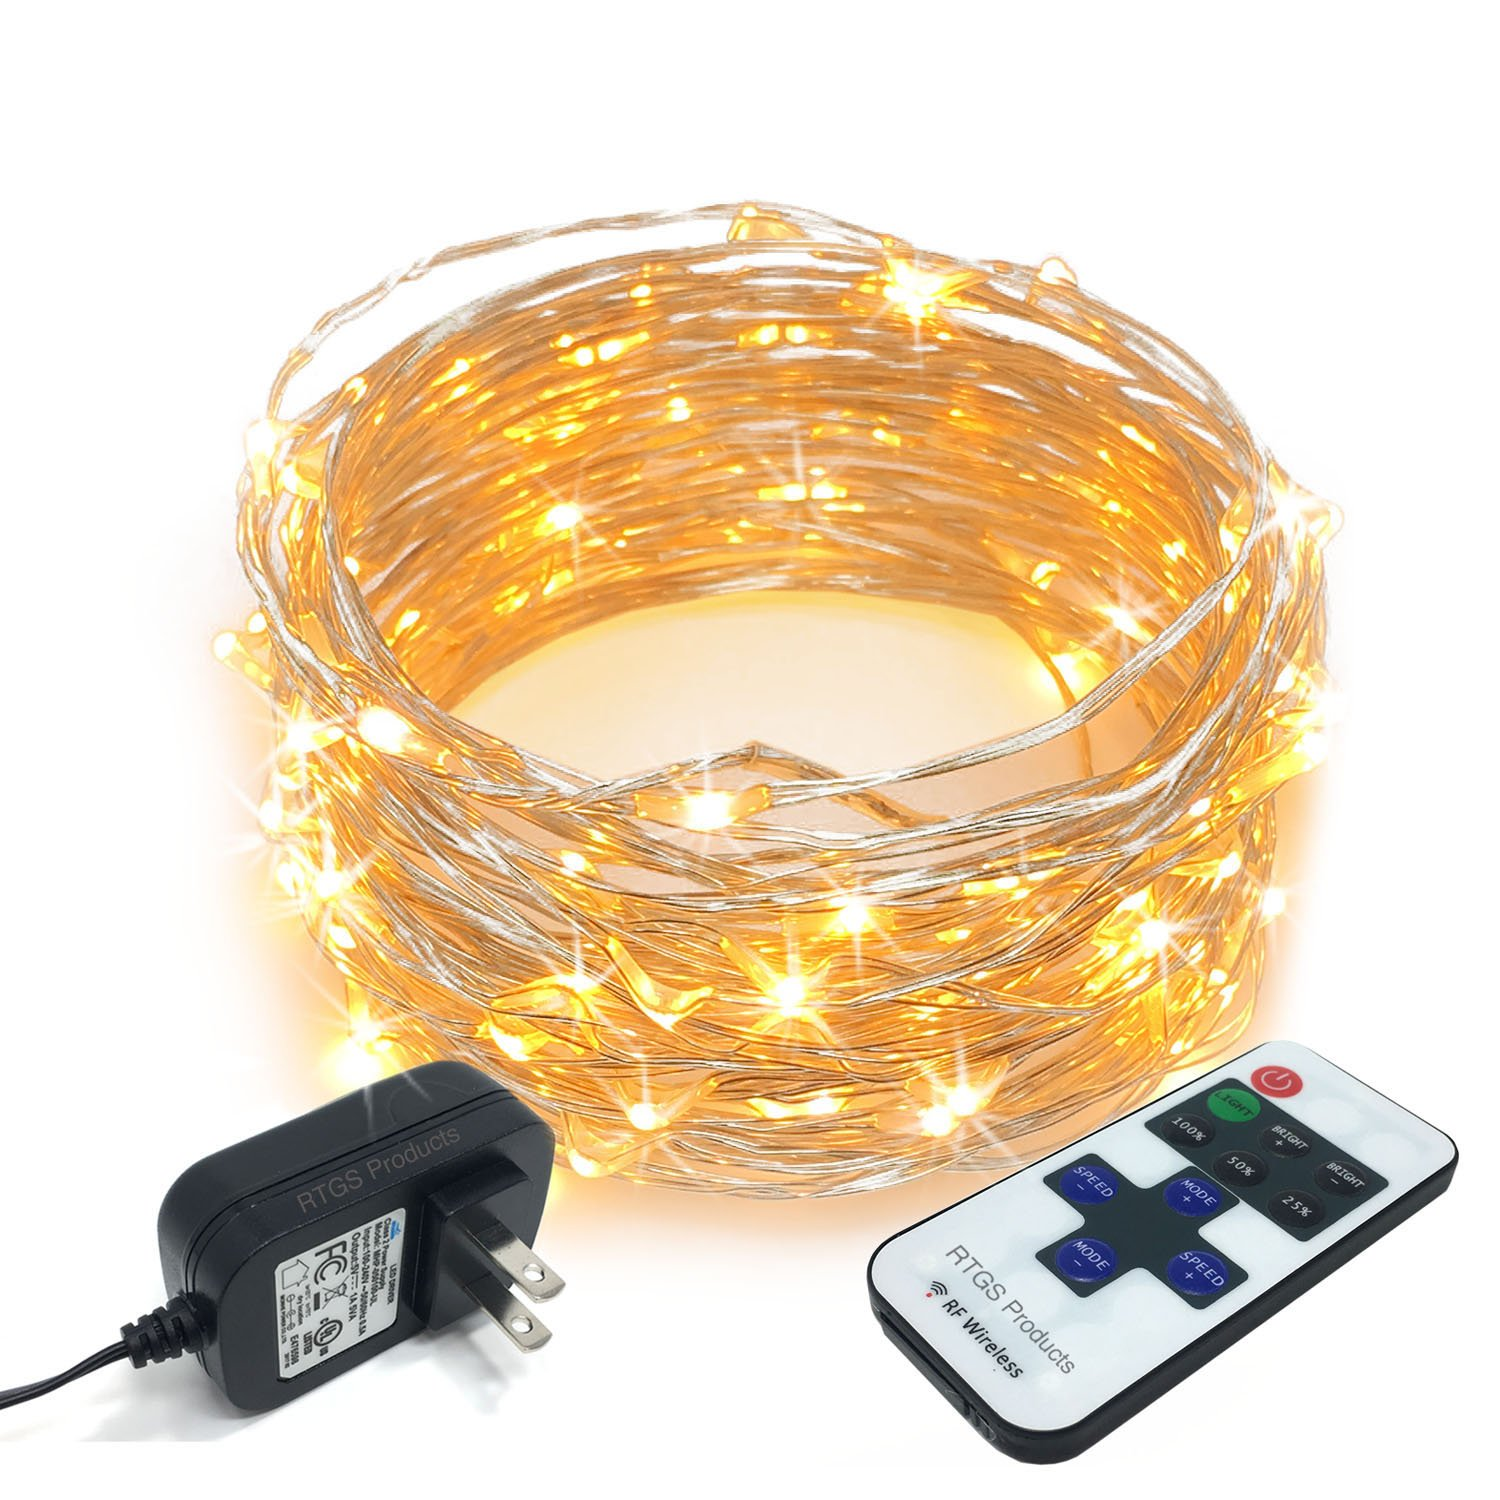 RTGS 100 LEDs String Lights Plug in on 32 Feet Long Silver Color Wire Indoor Outdoor Use Warm White Color 100 LEDs 32 FEET Remote and Functions